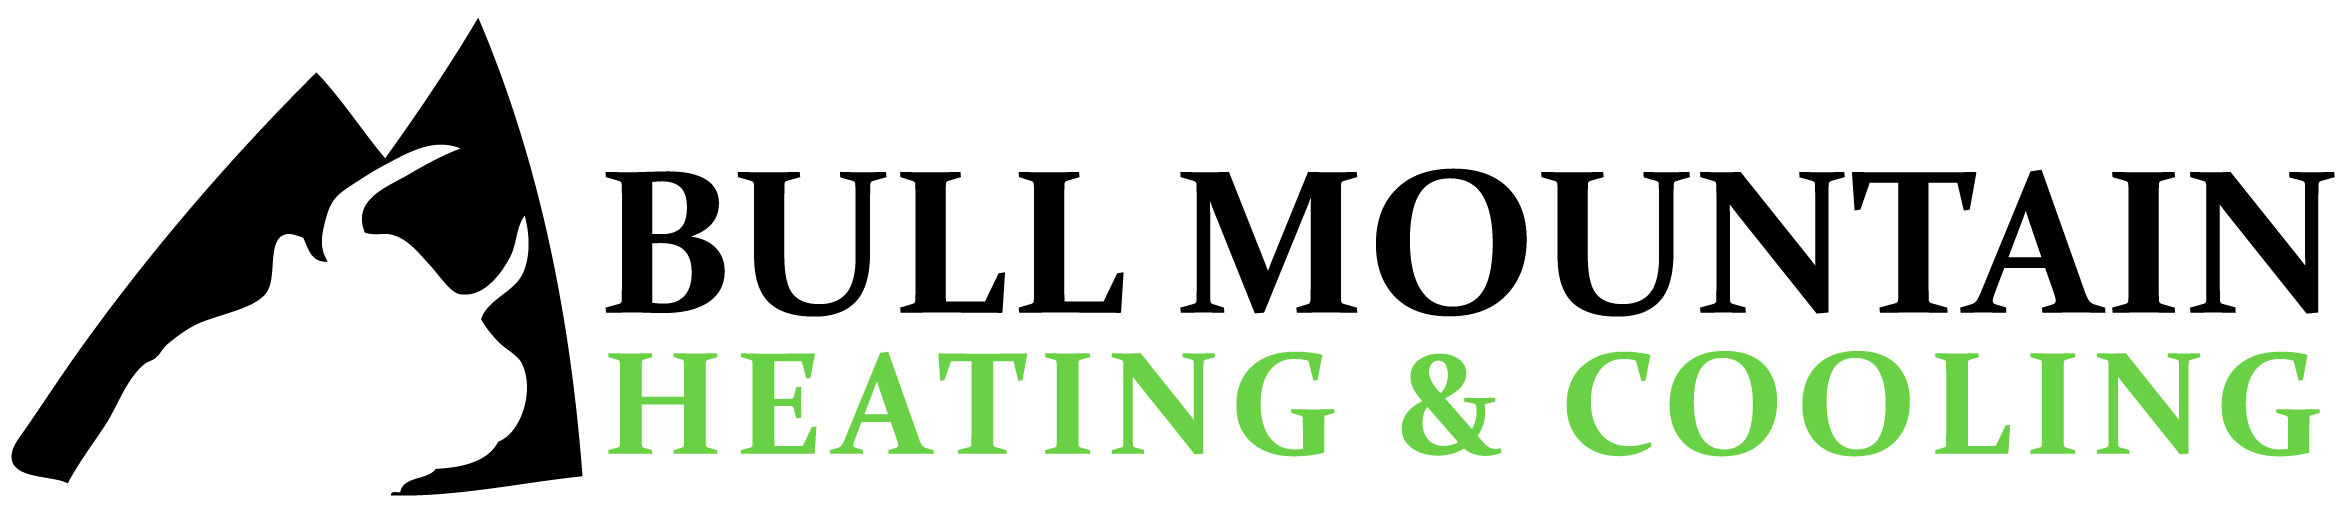 Bull Mountain Heating and Cooling